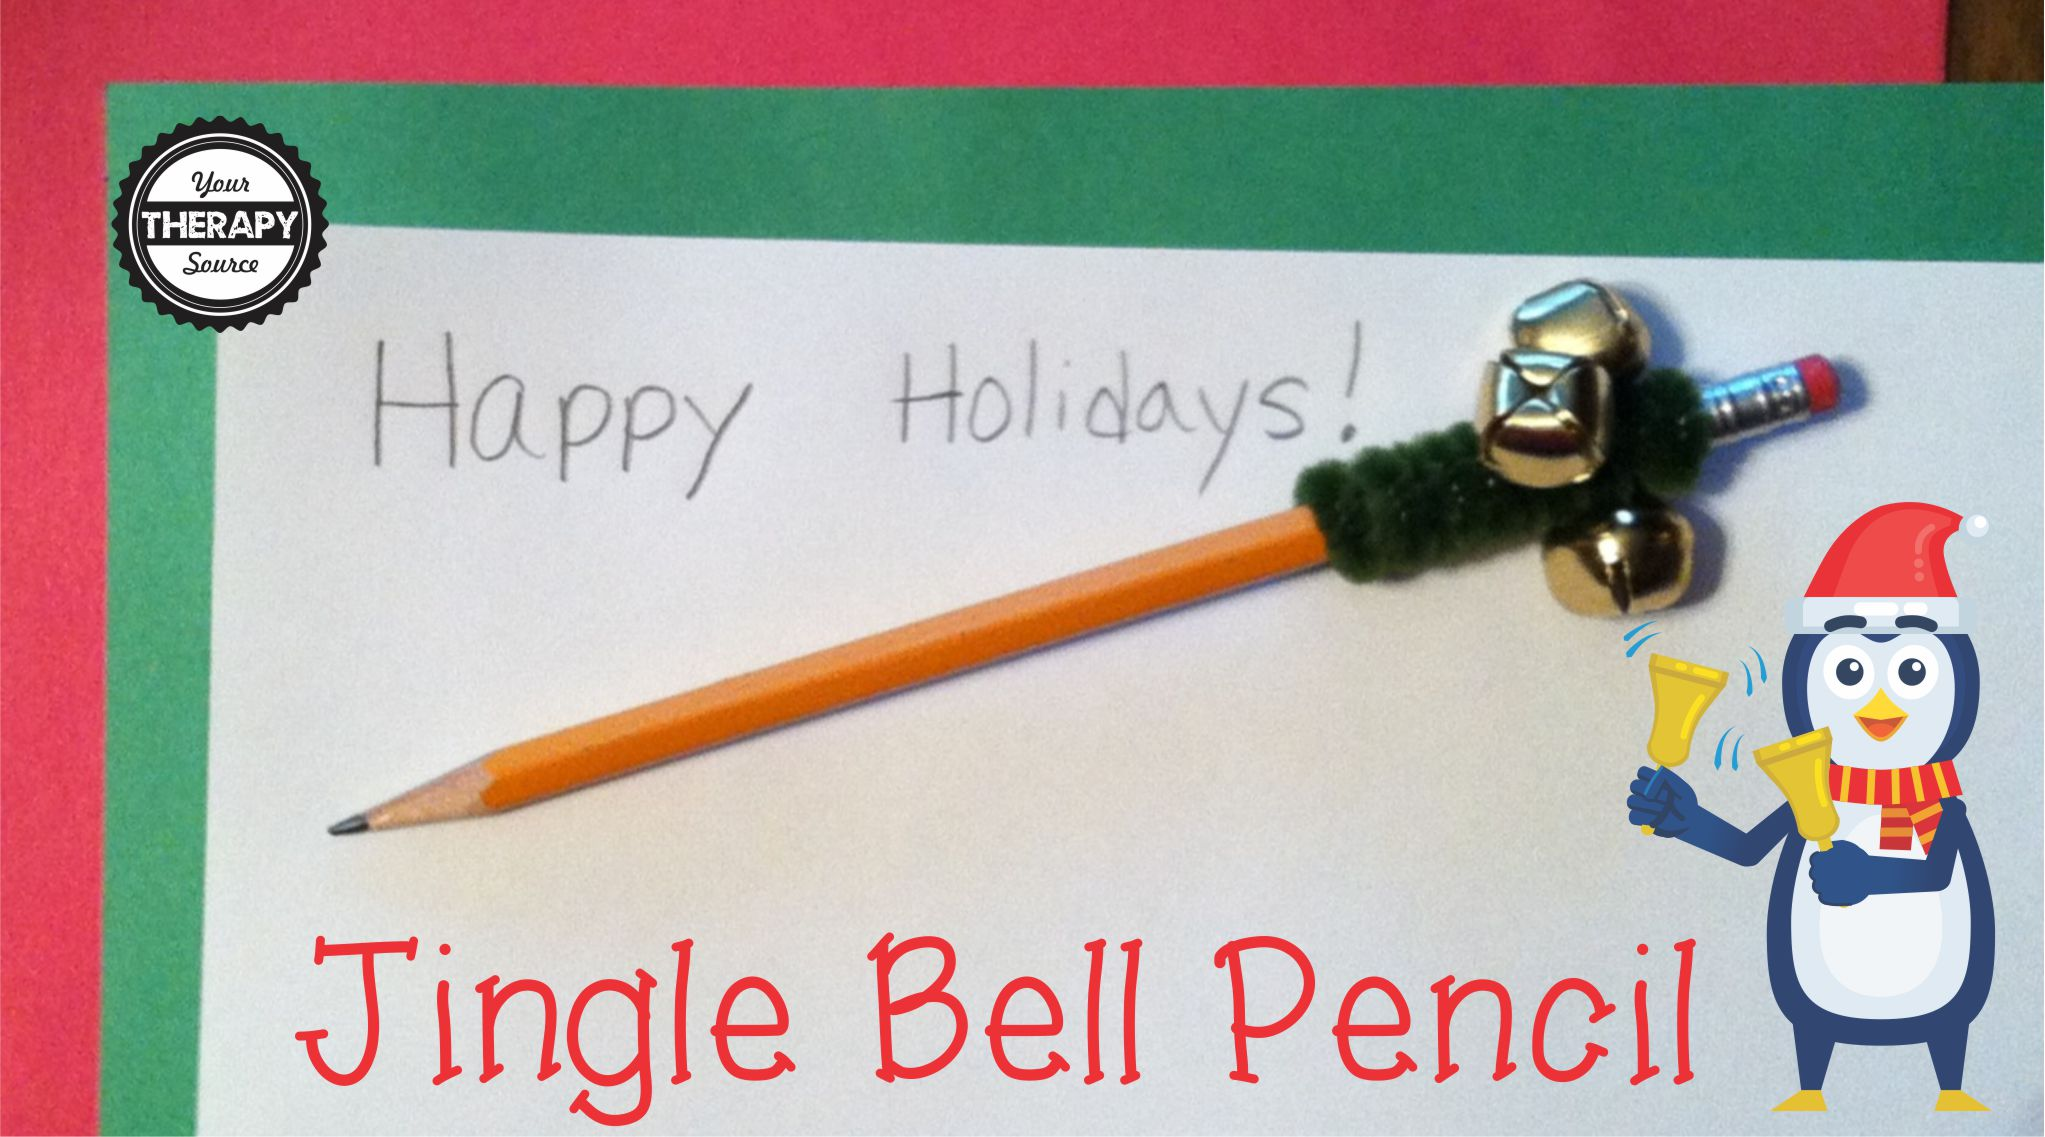 jingle bell pencil - your therapy source